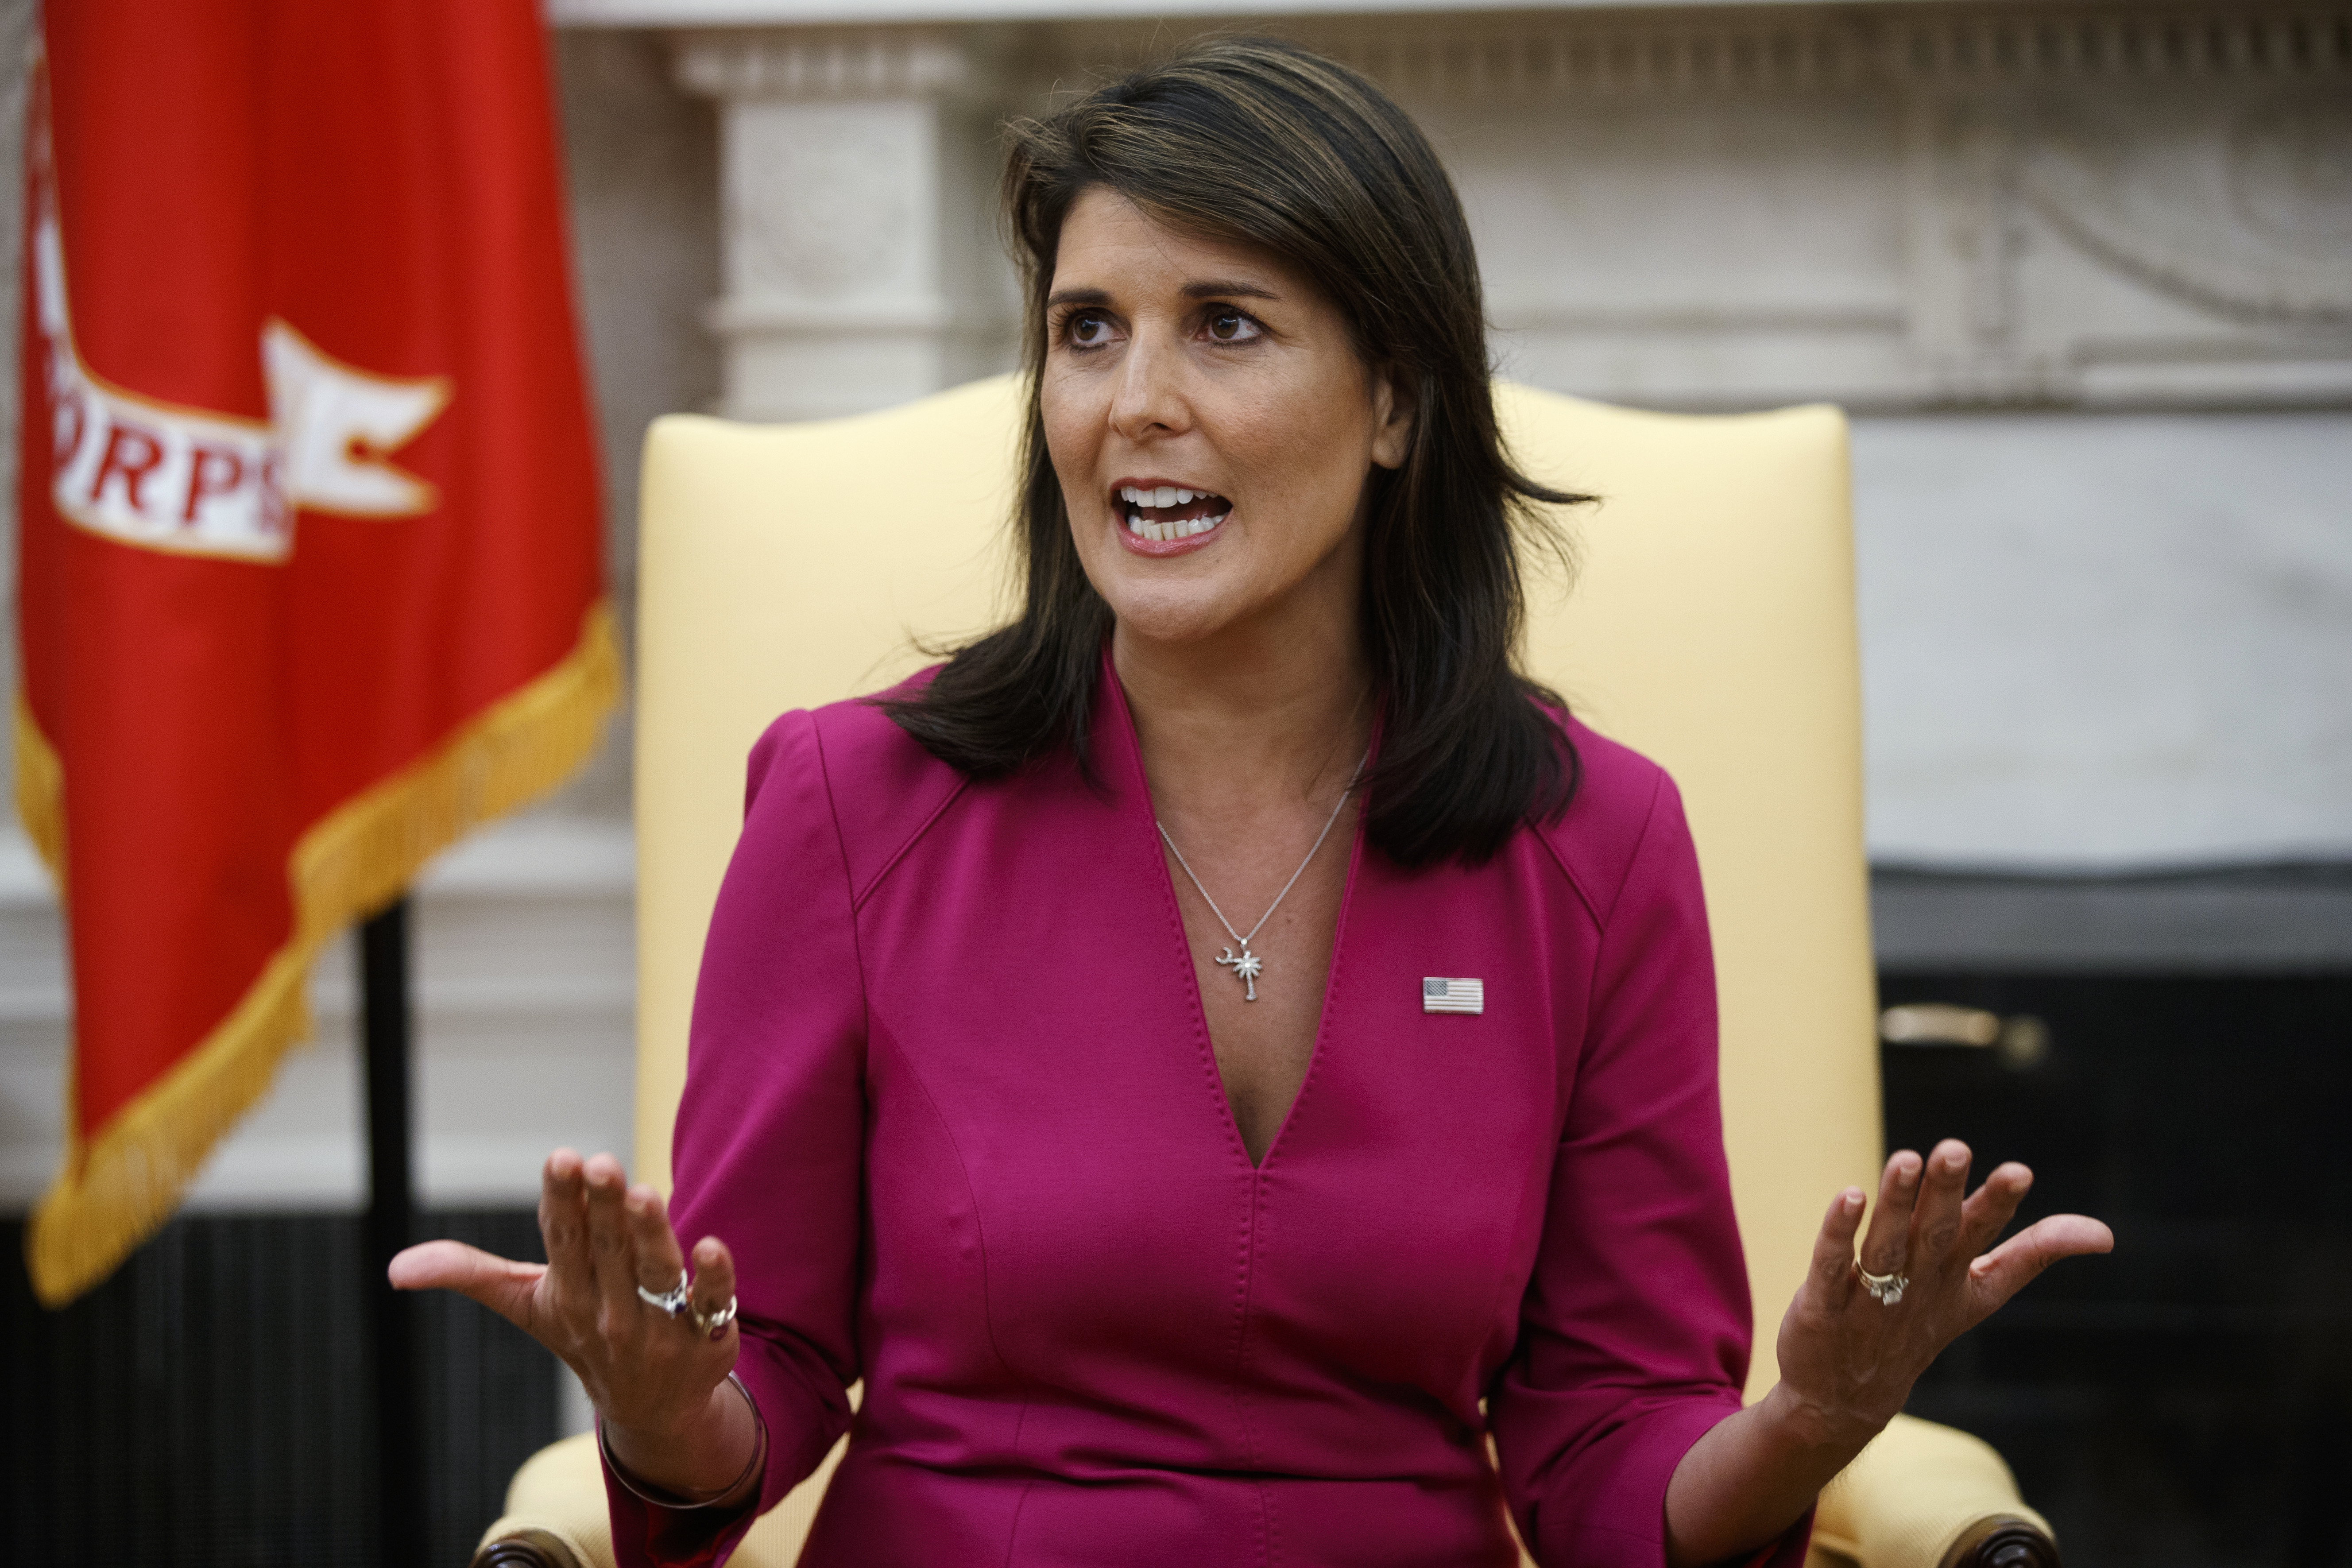 Nikki Haley - The outgoing U.S. Ambassador to the United Nations announced Tuesday, Oct. 9, that she was leaving the post at the end of the year during a meeting with President Donald Trump in the Oval Office. (AP Photo/Evan Vucci)